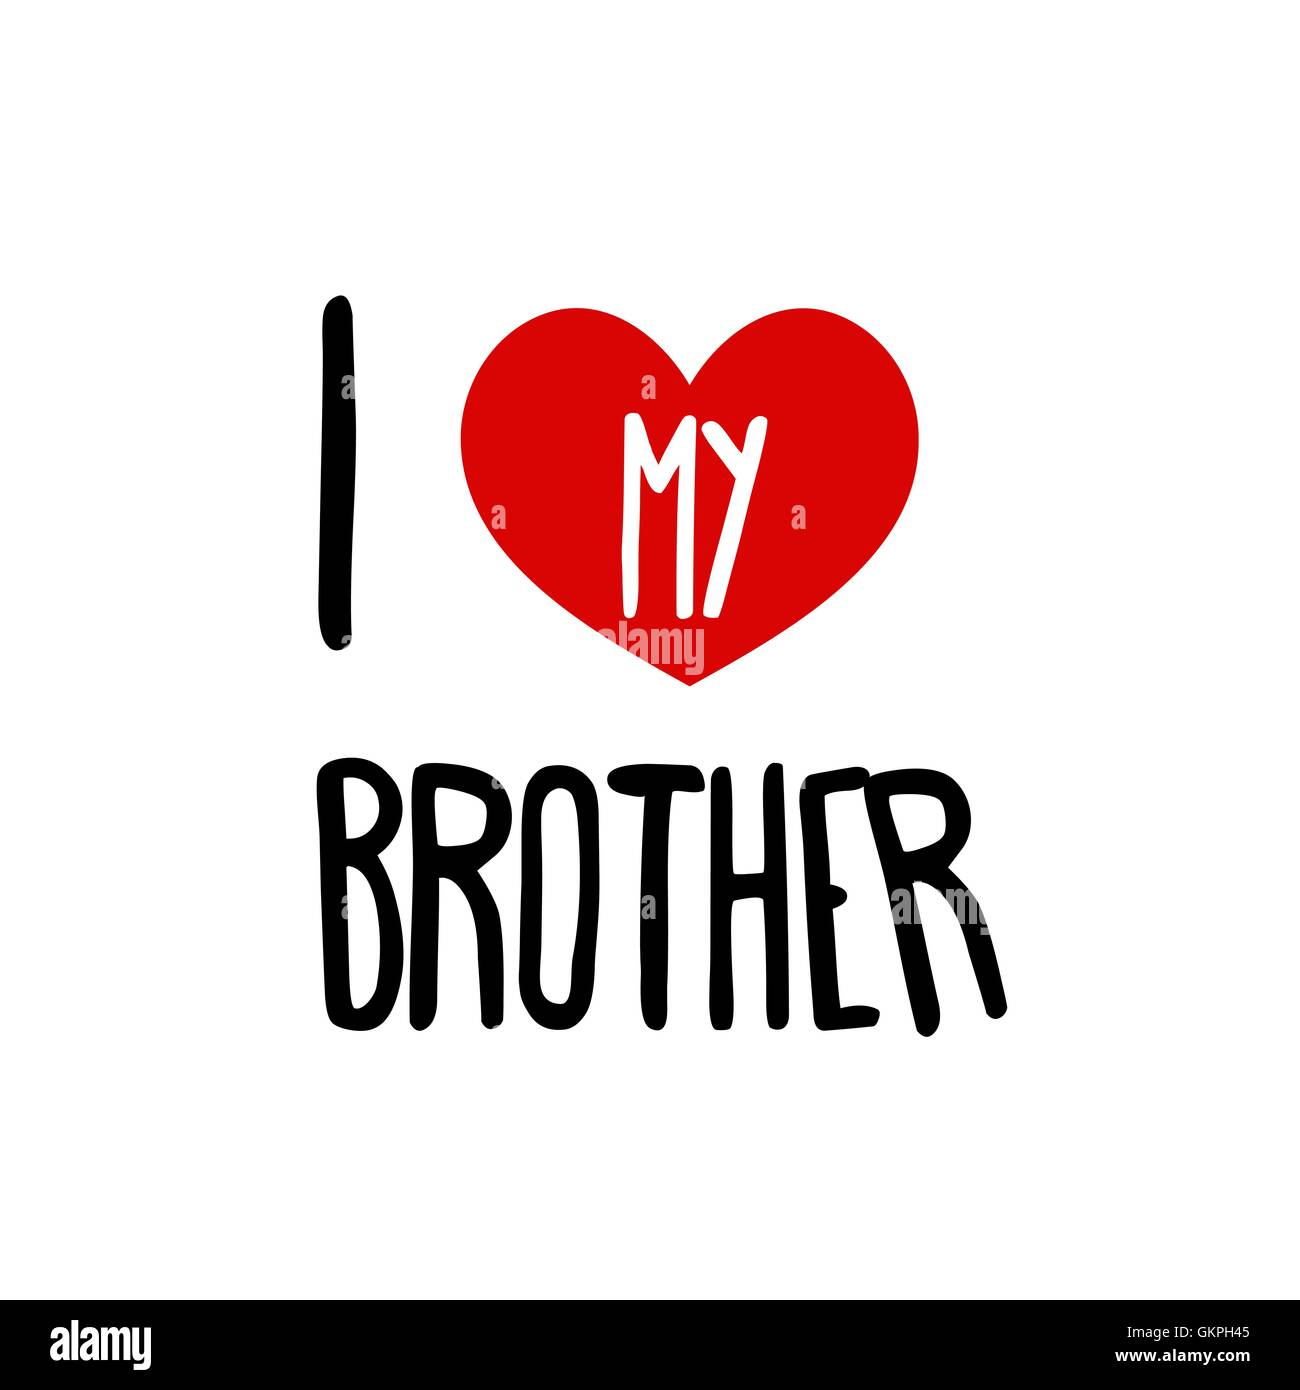 I Love My Brother Family Red Heart Simple Symbol White Background